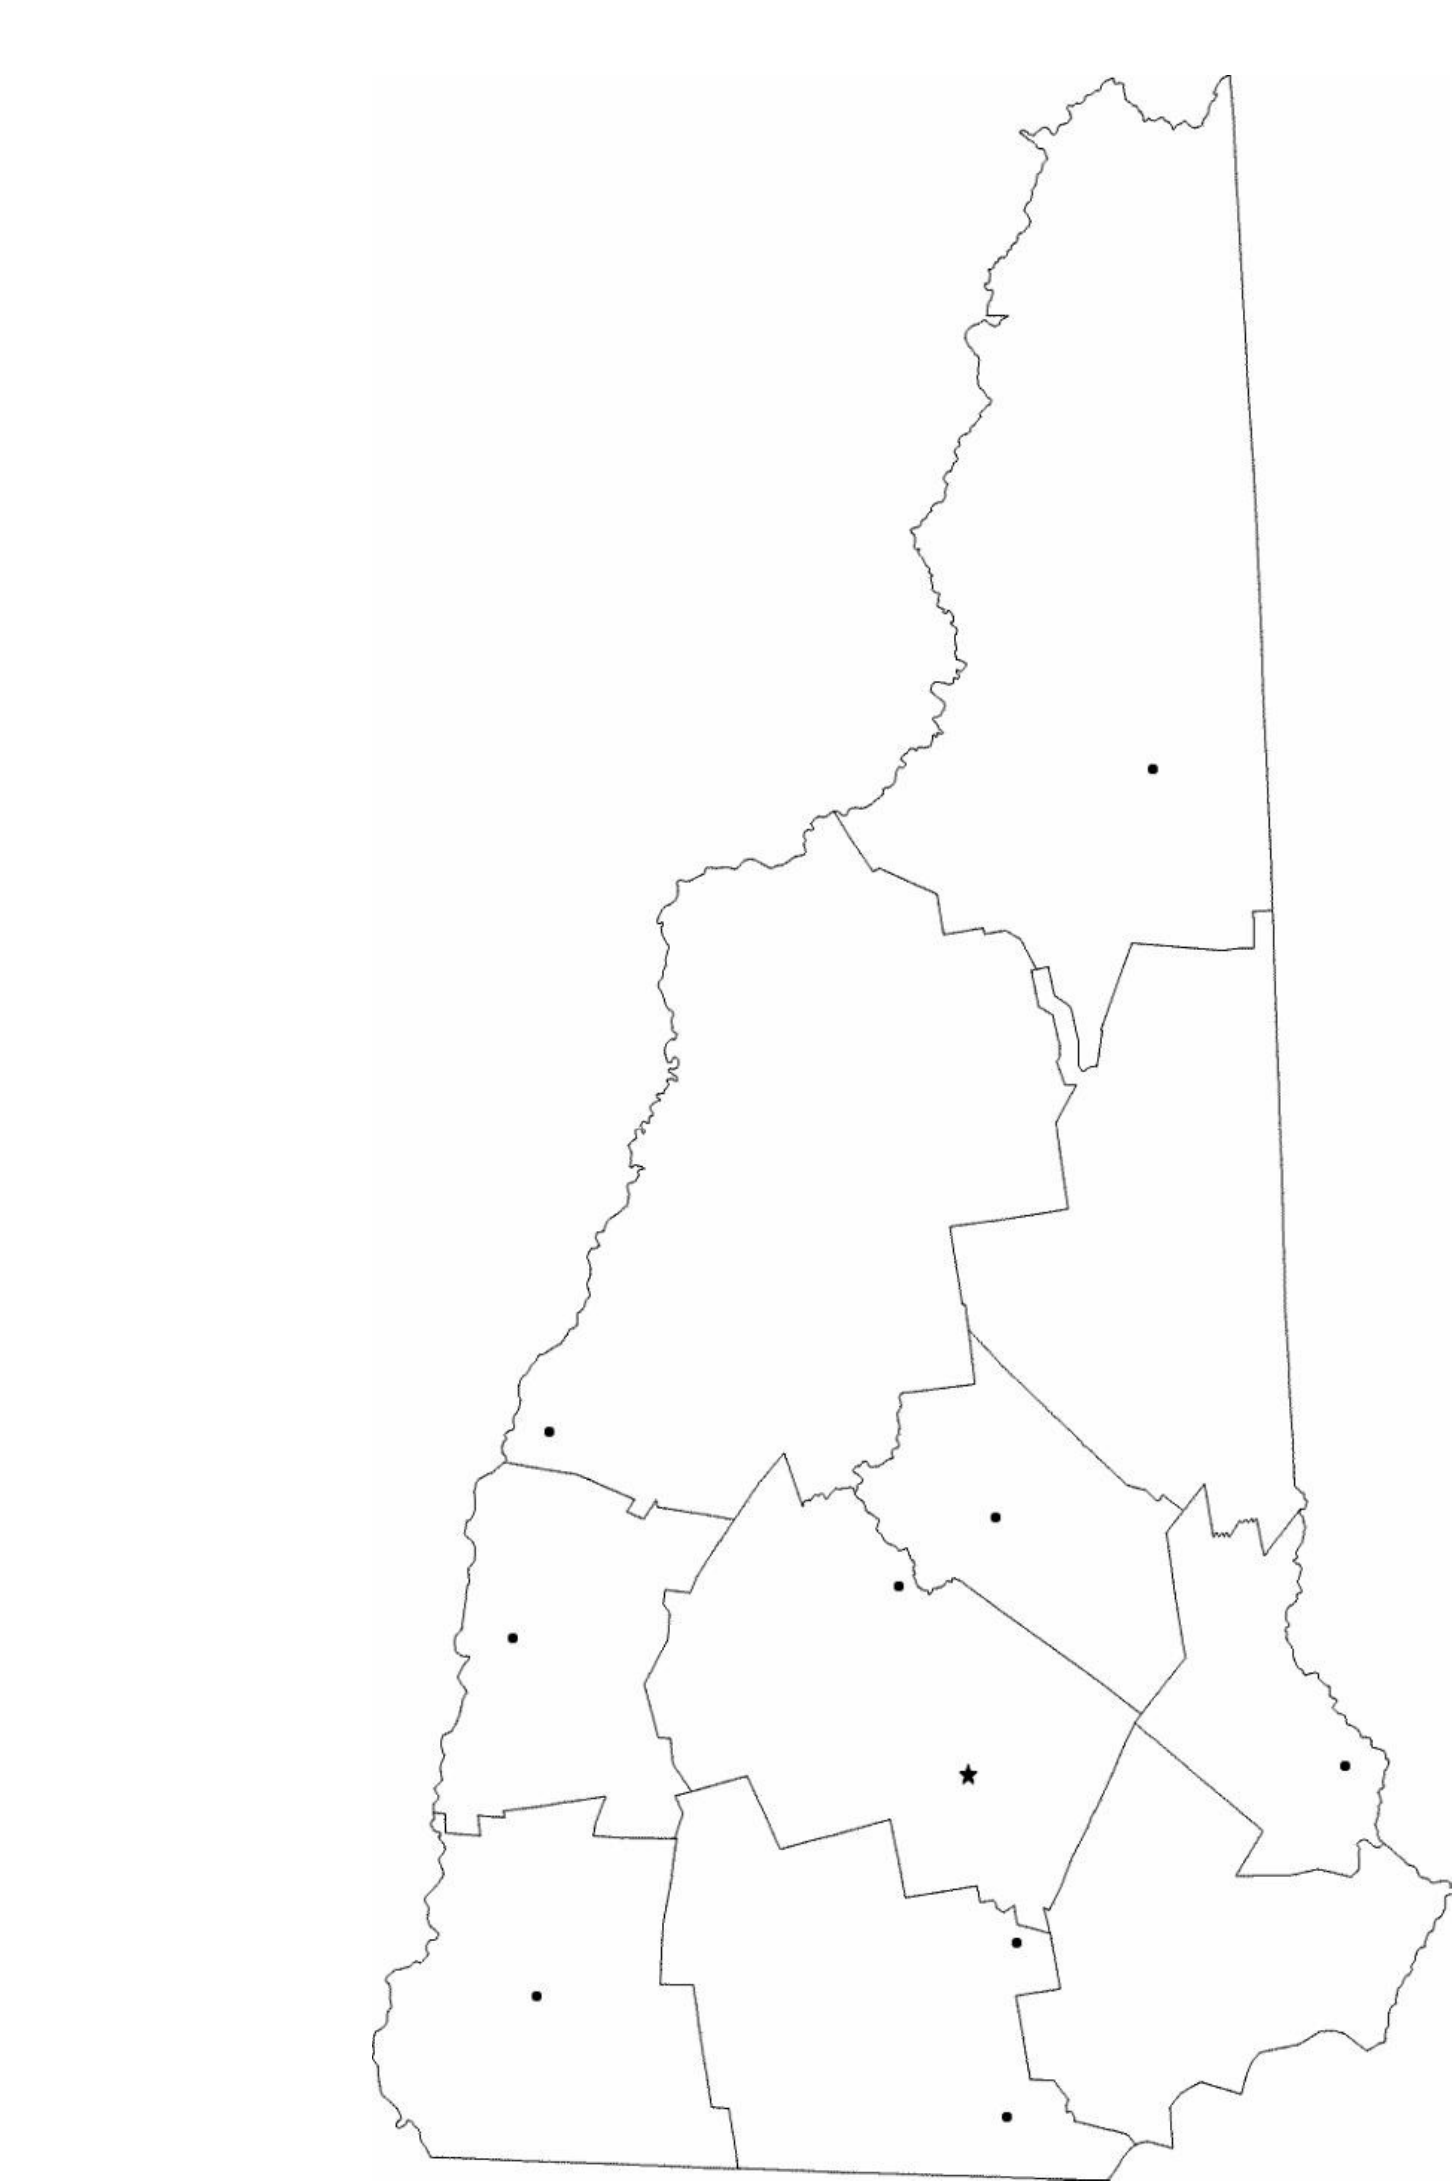 Blank New Hampshire City Map Free Download